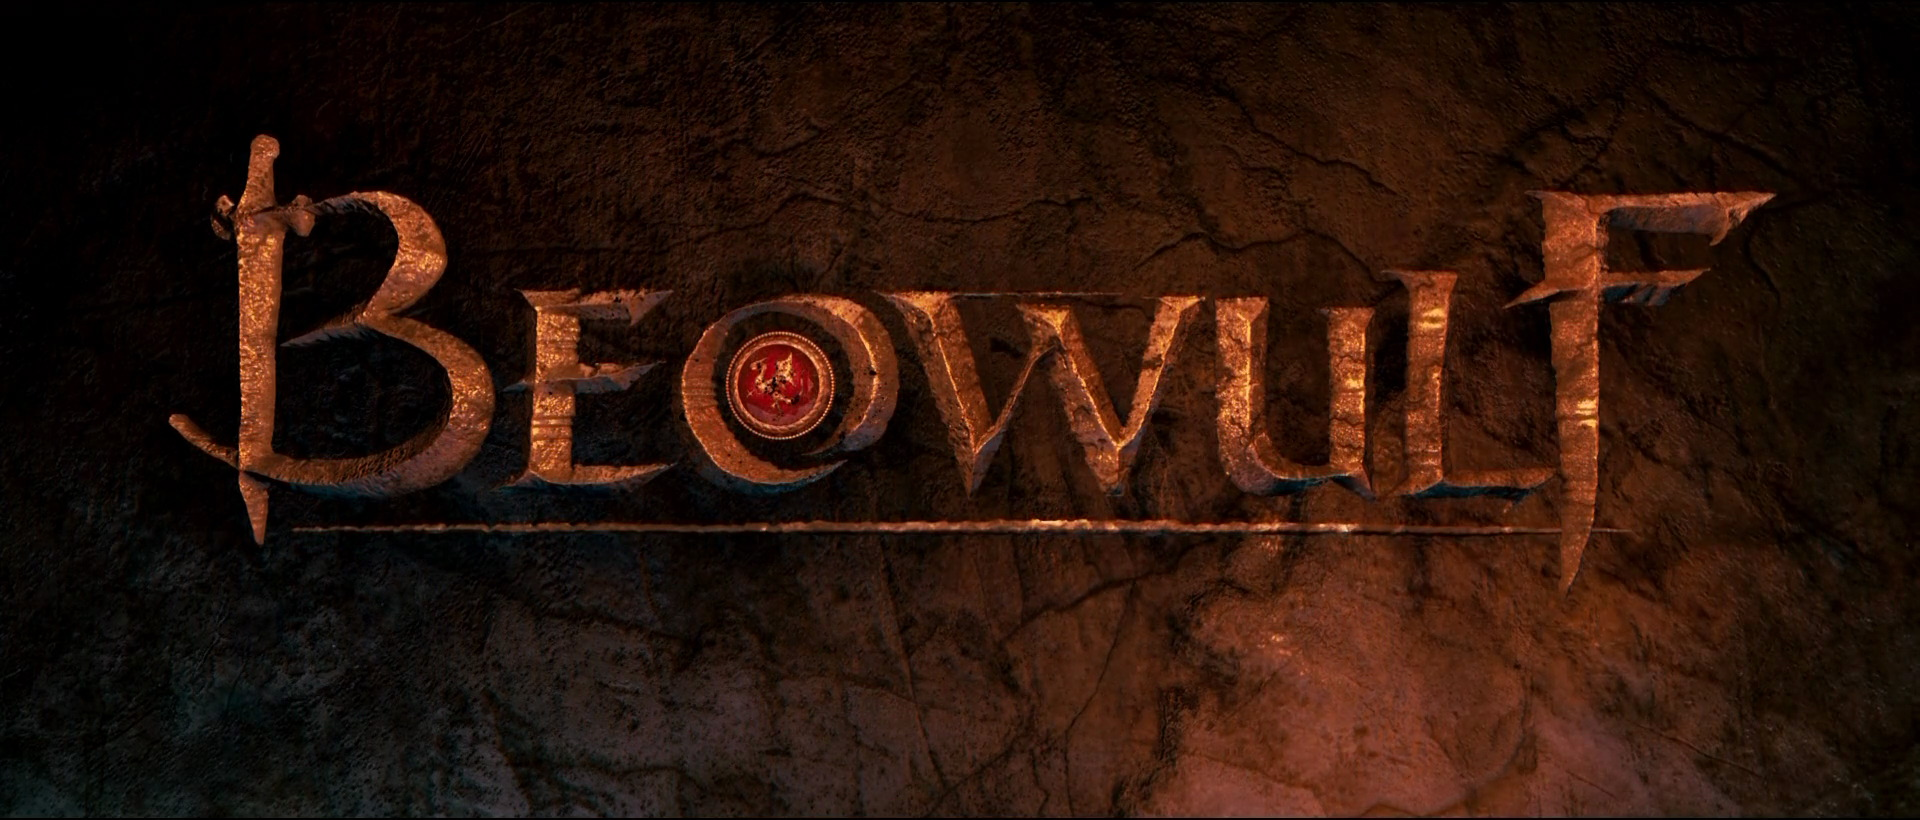 the great hero beowulf Beowulf essay every epic hero possesses certain heroic characteristics the epic poem beowulf describes the most heroic man of the anglo-saxon times beowulf is the hero he shows that he is a great man by always putting other things before his own needs.